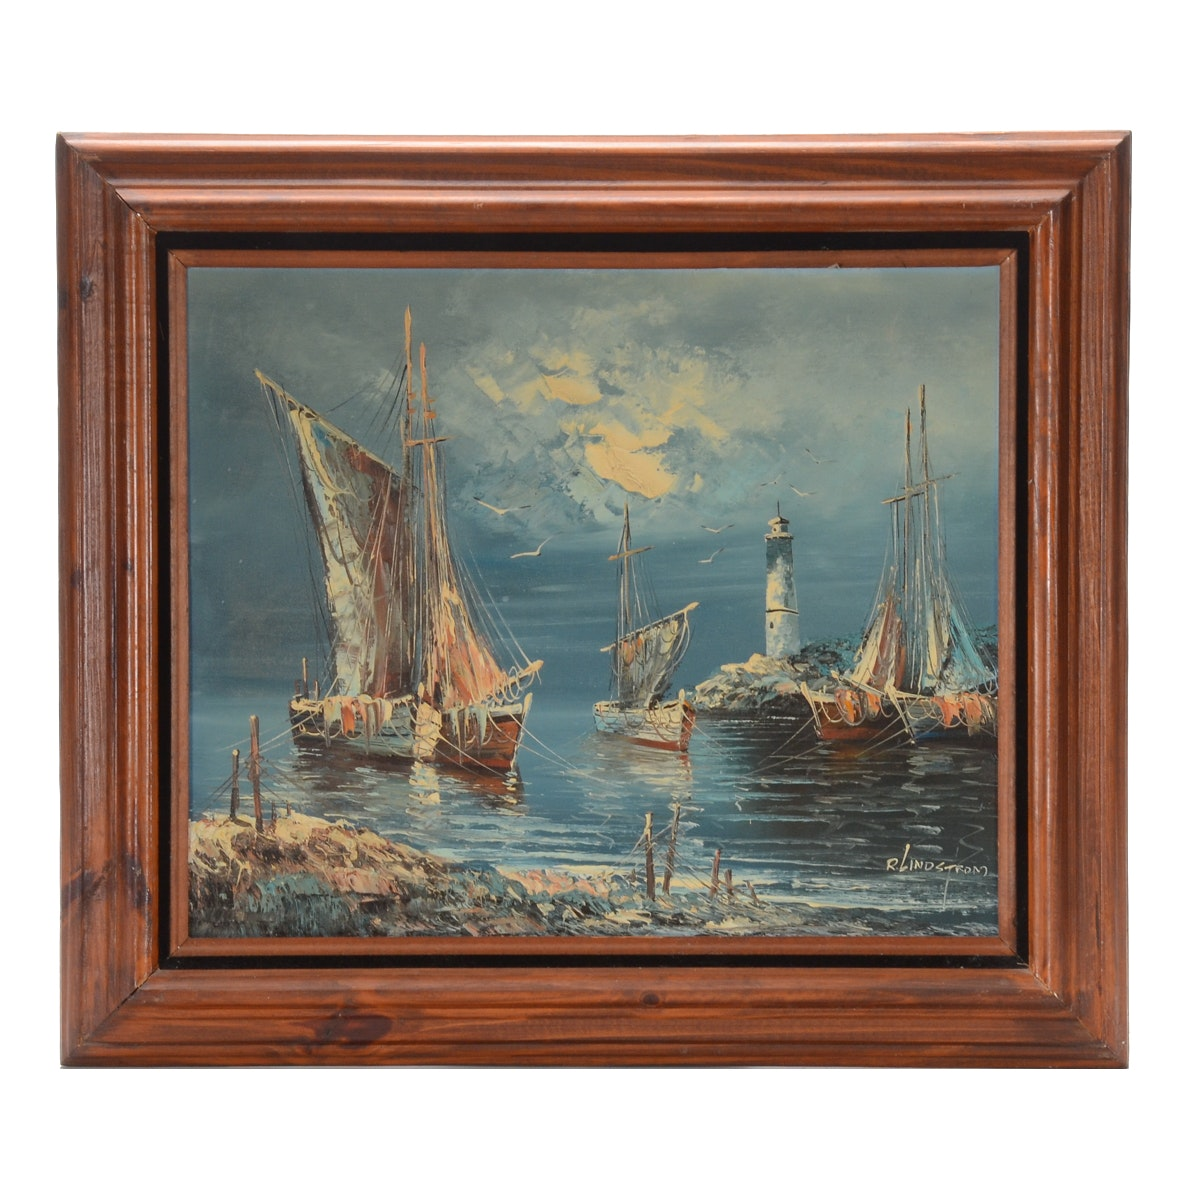 R. Lindstrom Oil Painting on Canvas of Moored Ships at Night